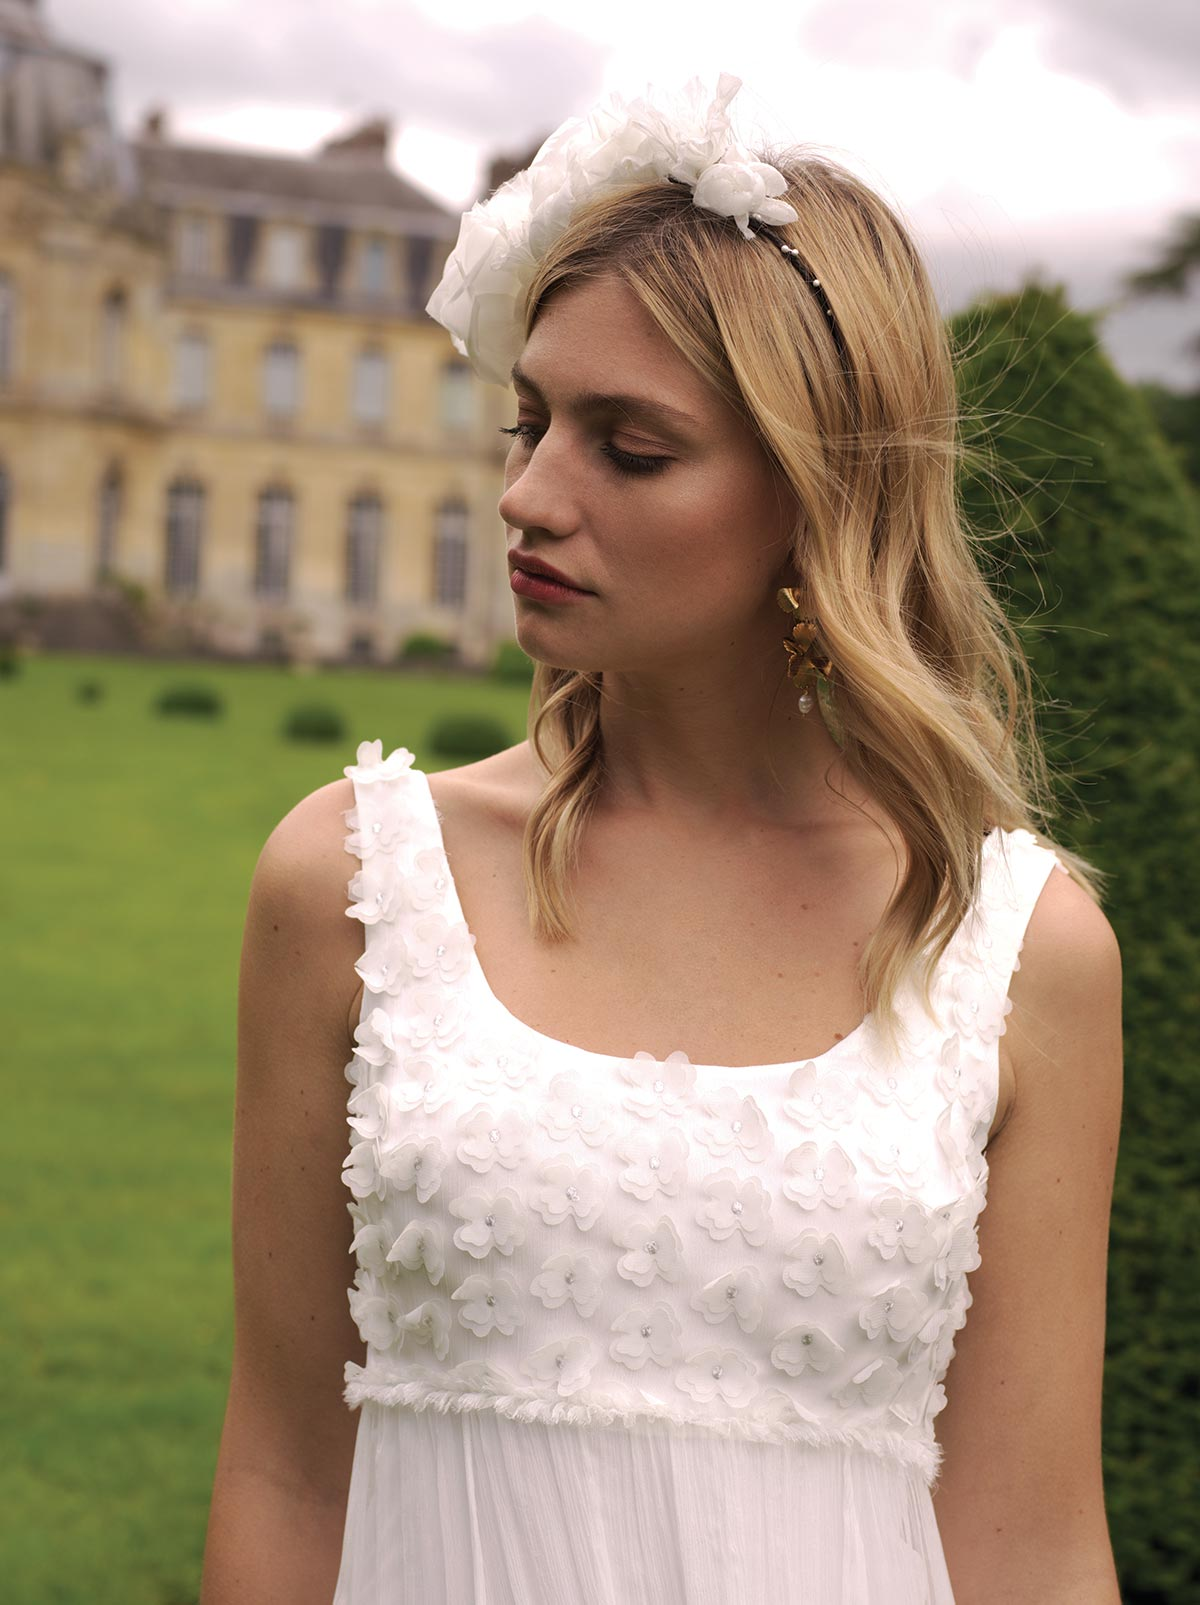 tiphaine-detail-marie-laporte-collection-2020